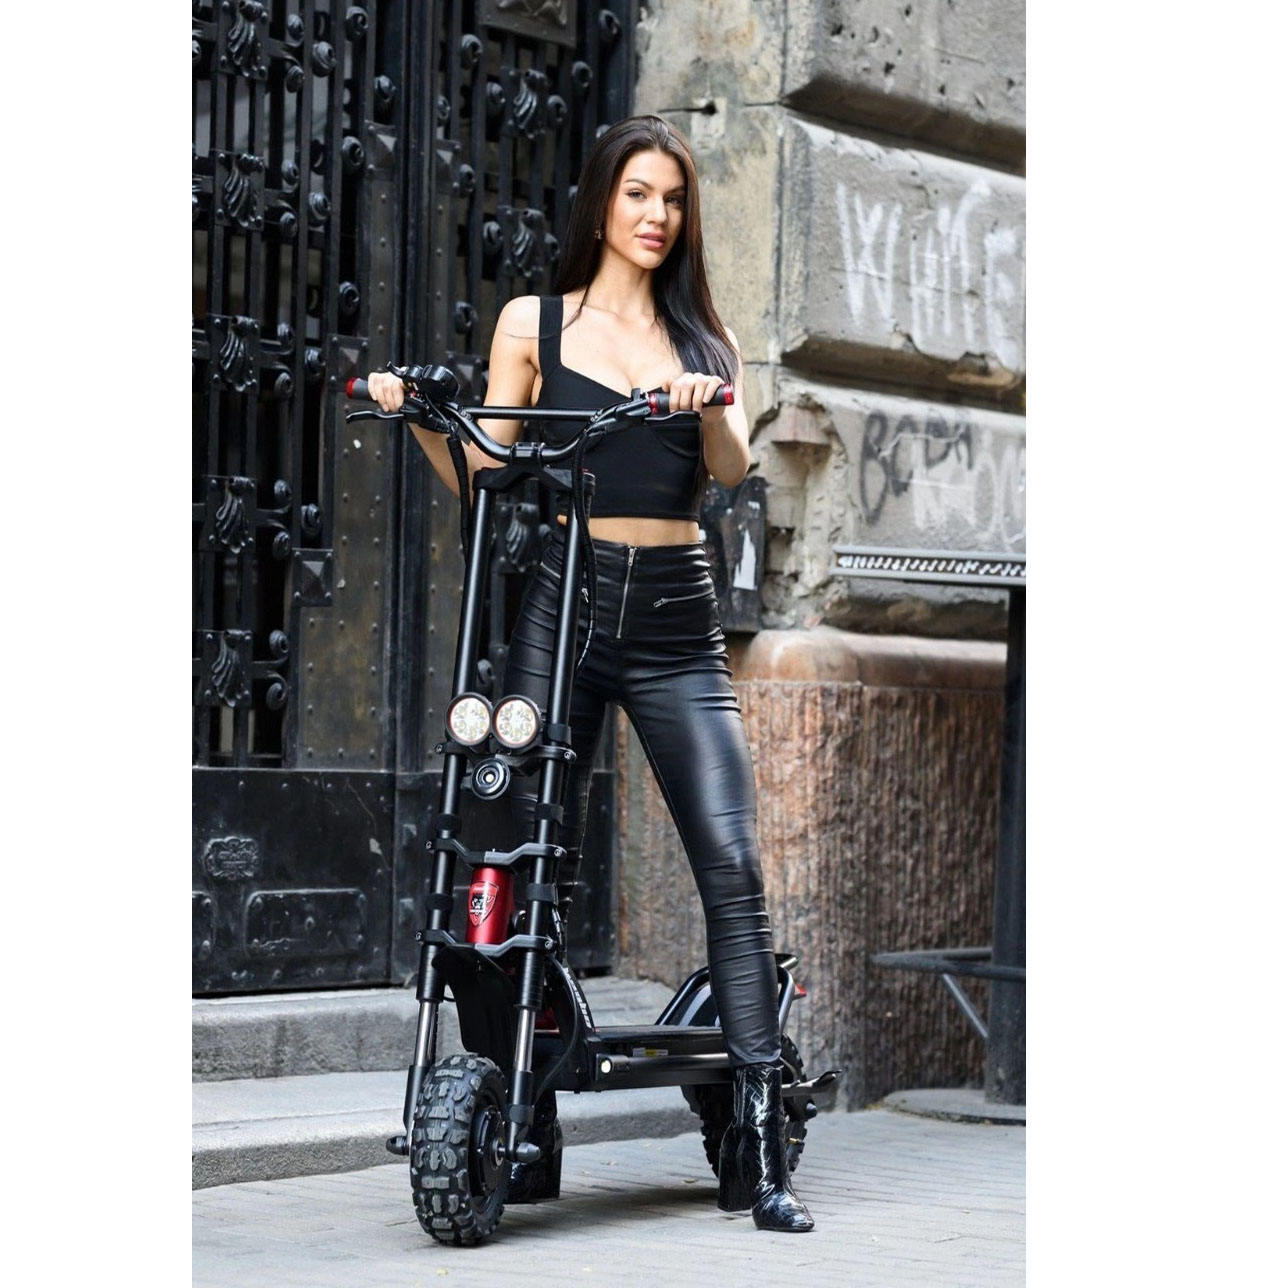 Dual motors 2*1500watt 72v 60v original kaabo wolf warrior king 11inch electric scooters for sale adult scooter electrical